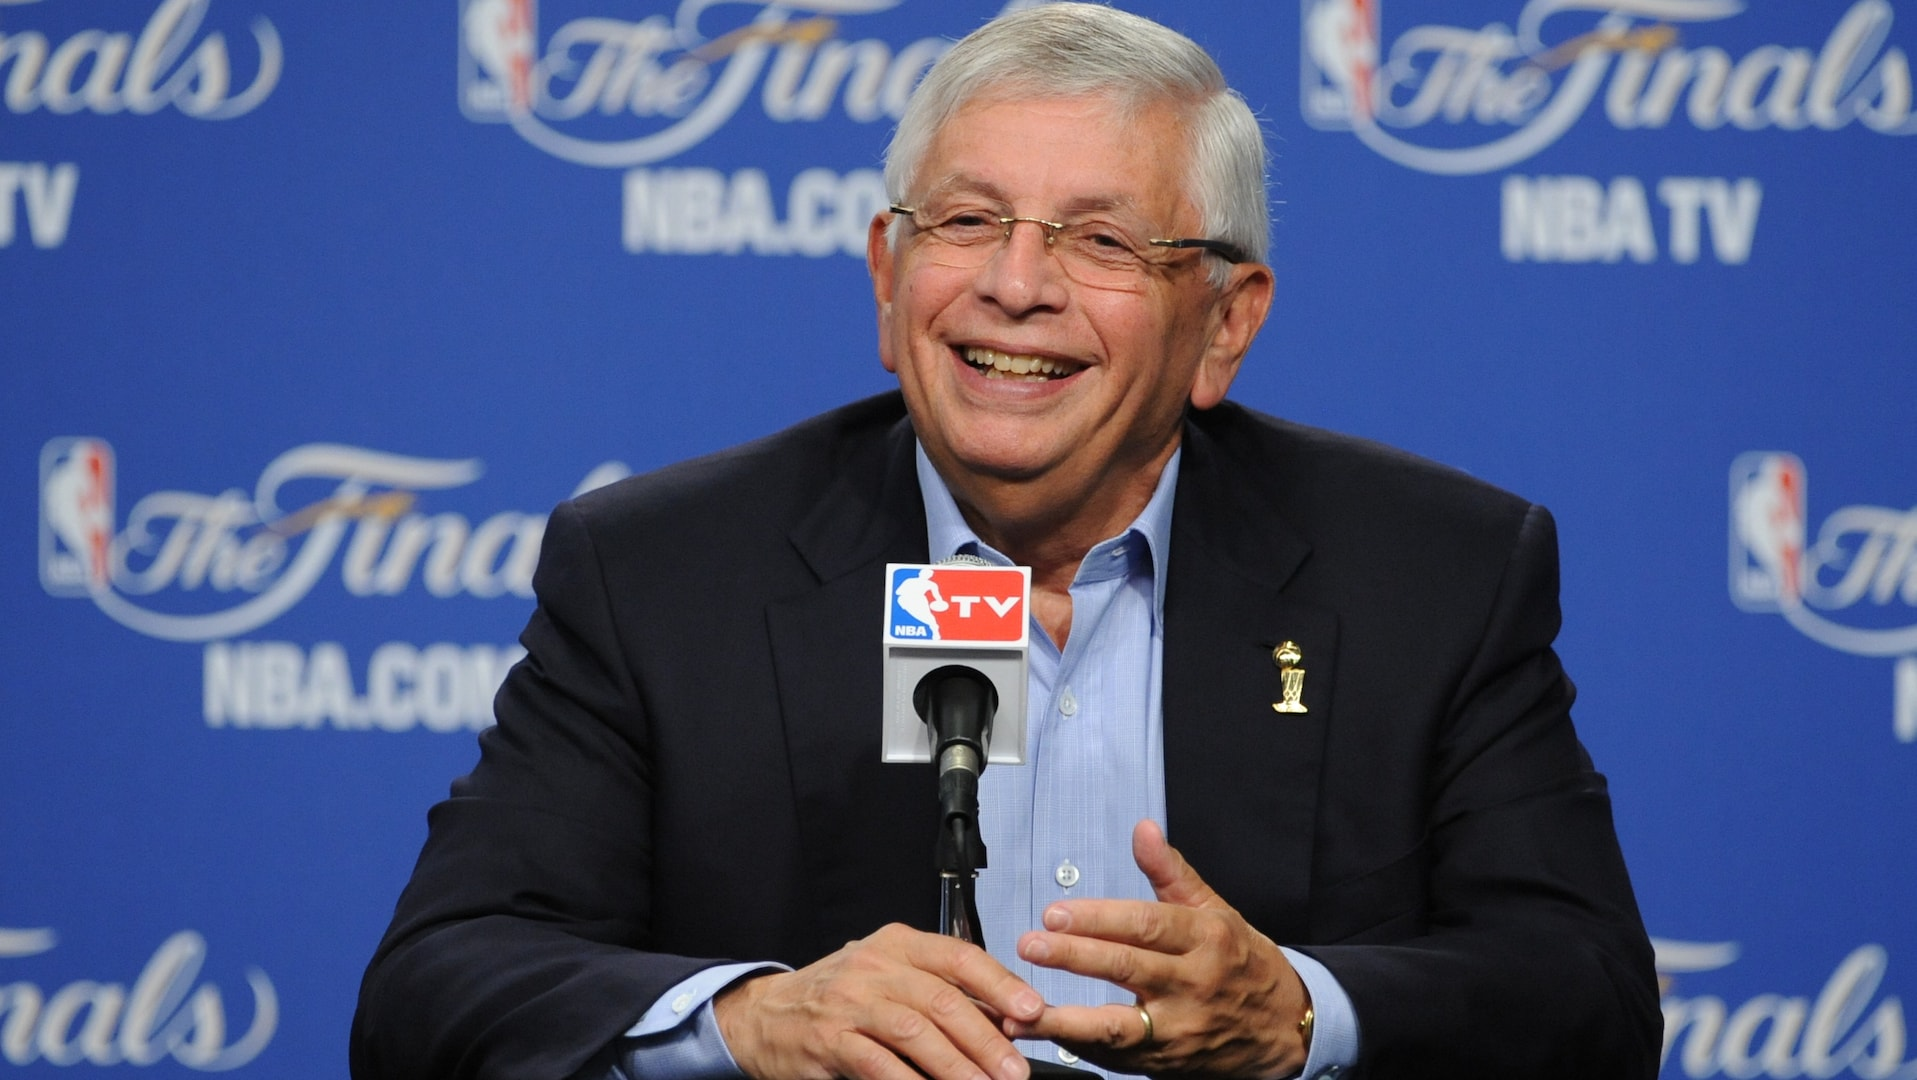 David Stern's immeasurable life celebrated at memorial service